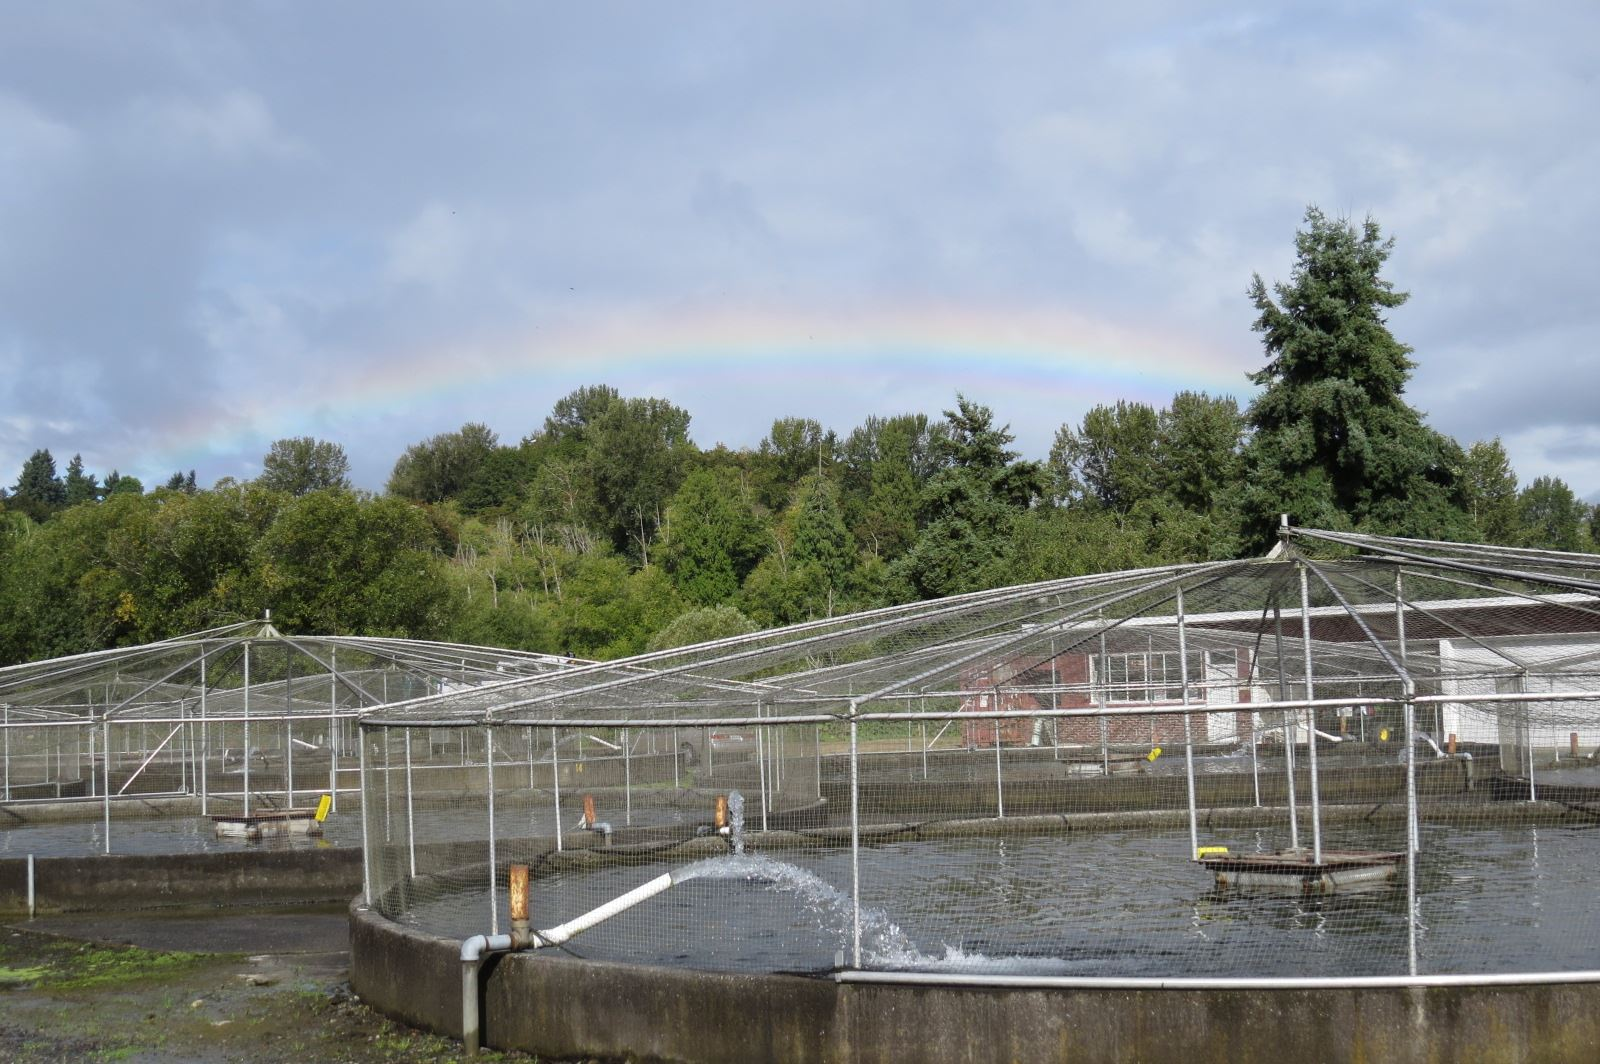 old round concrete ponds with nets used for raising juvenile salmonids outside, with rainbow in background